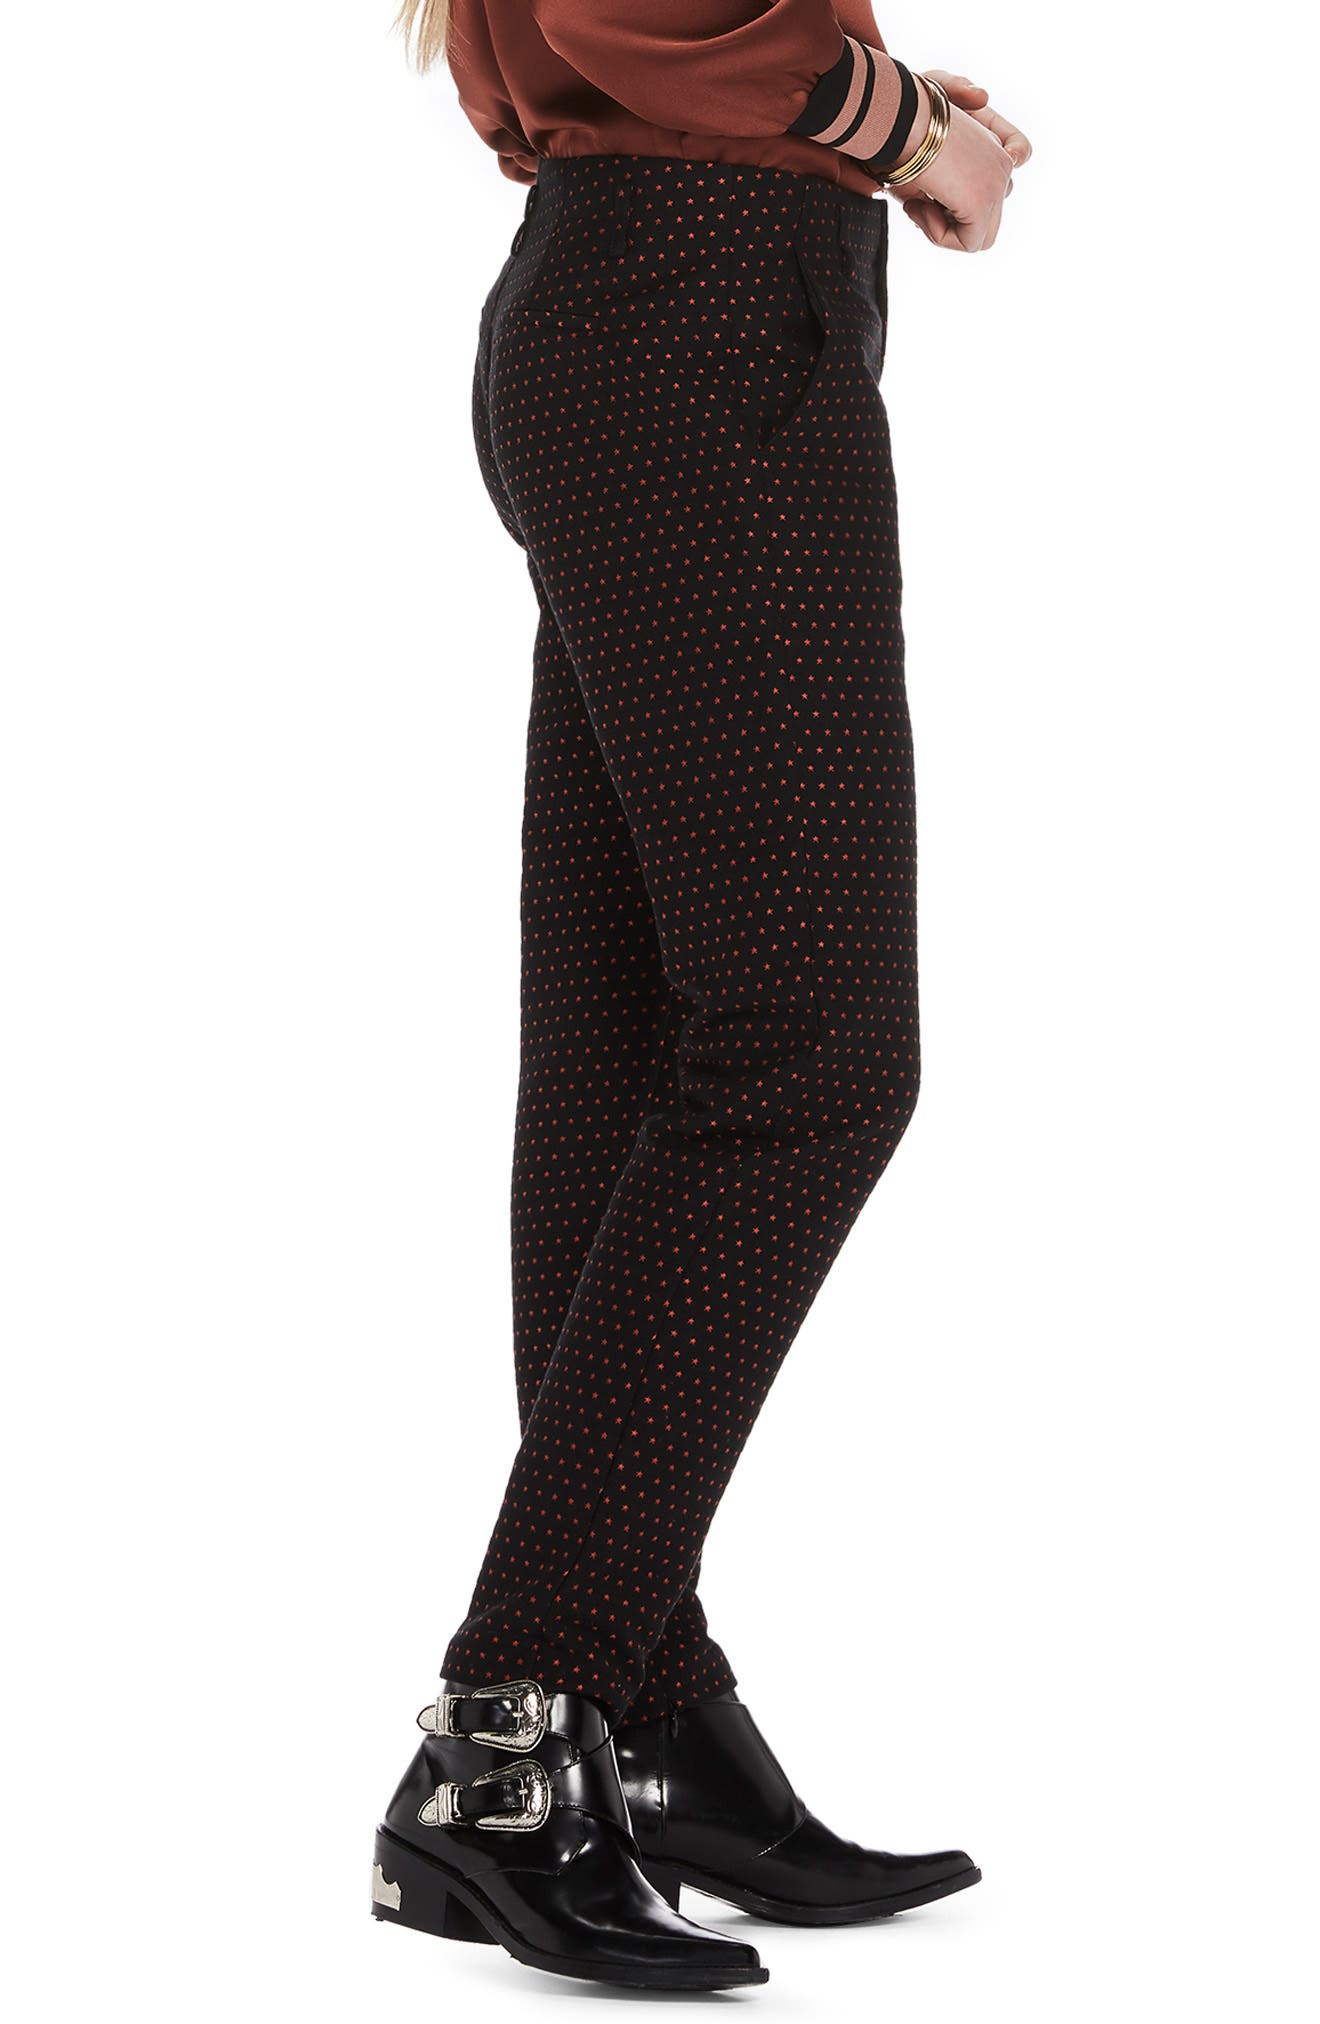 Starry Jacquard Tailored Stretch Pants,                             Alternate thumbnail 3, color,                             BLACK W/ SMALL STAR PRINT